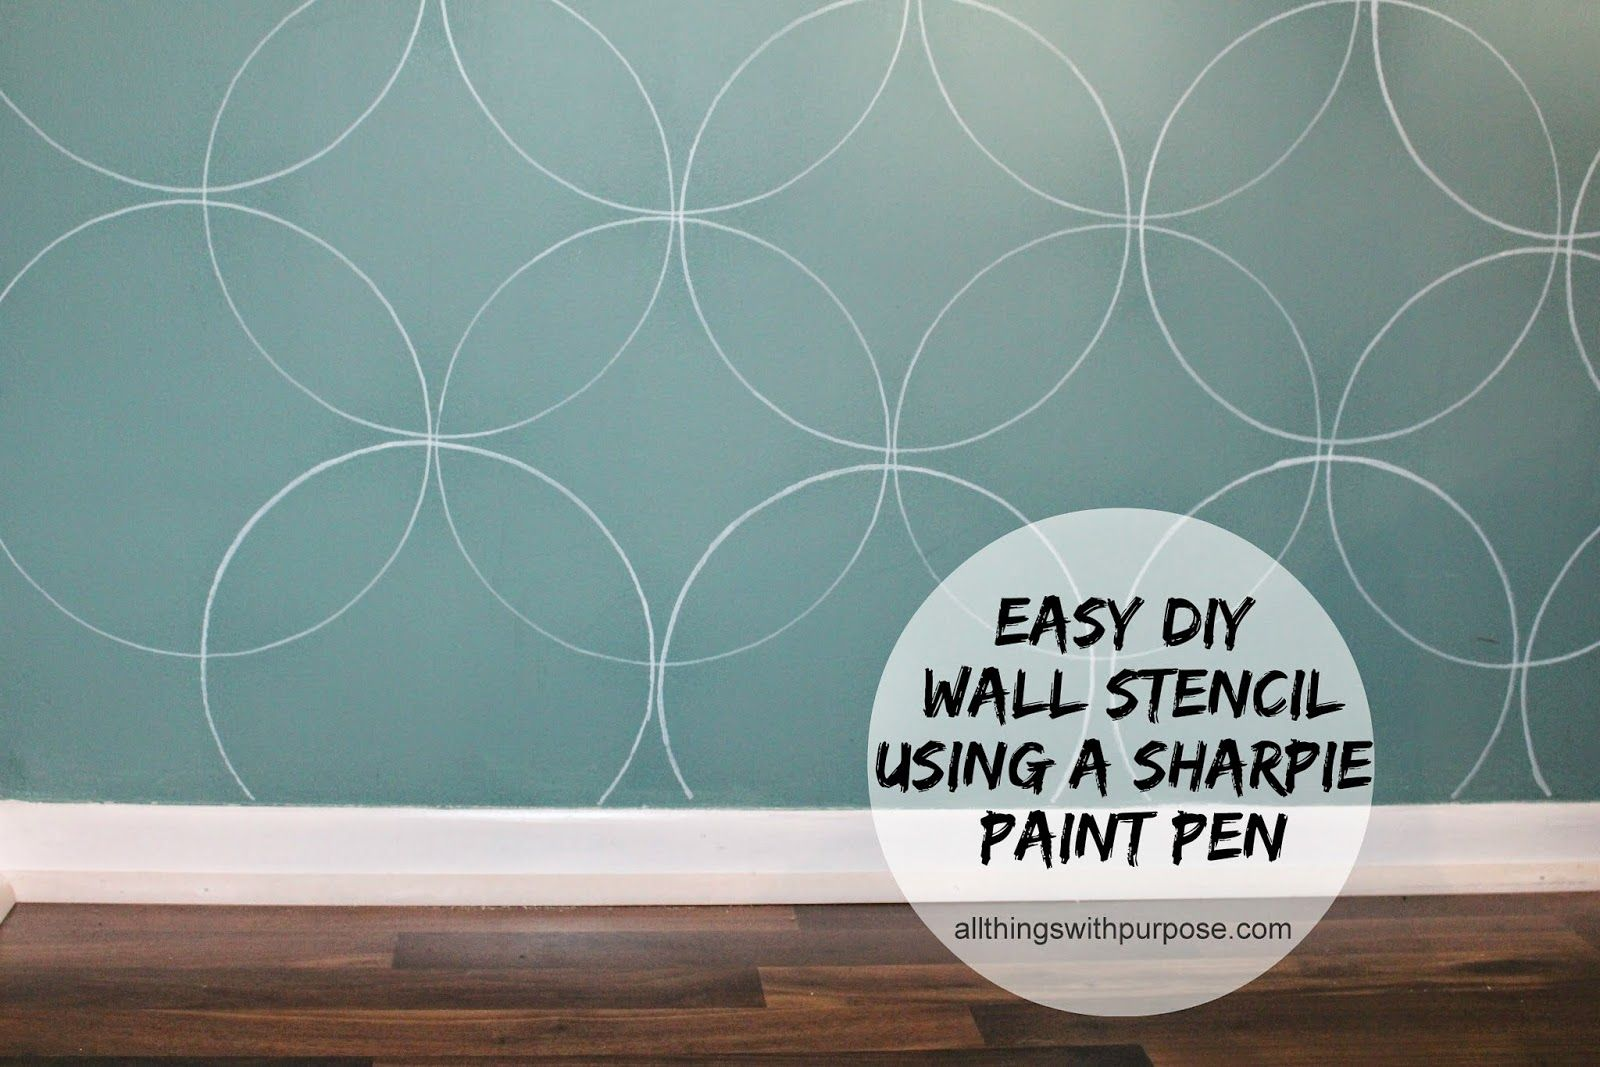 Easy Diy Wall Stencil With A Paint Pen Easy Wall Stencil Sharpie Wall Stencils Wall